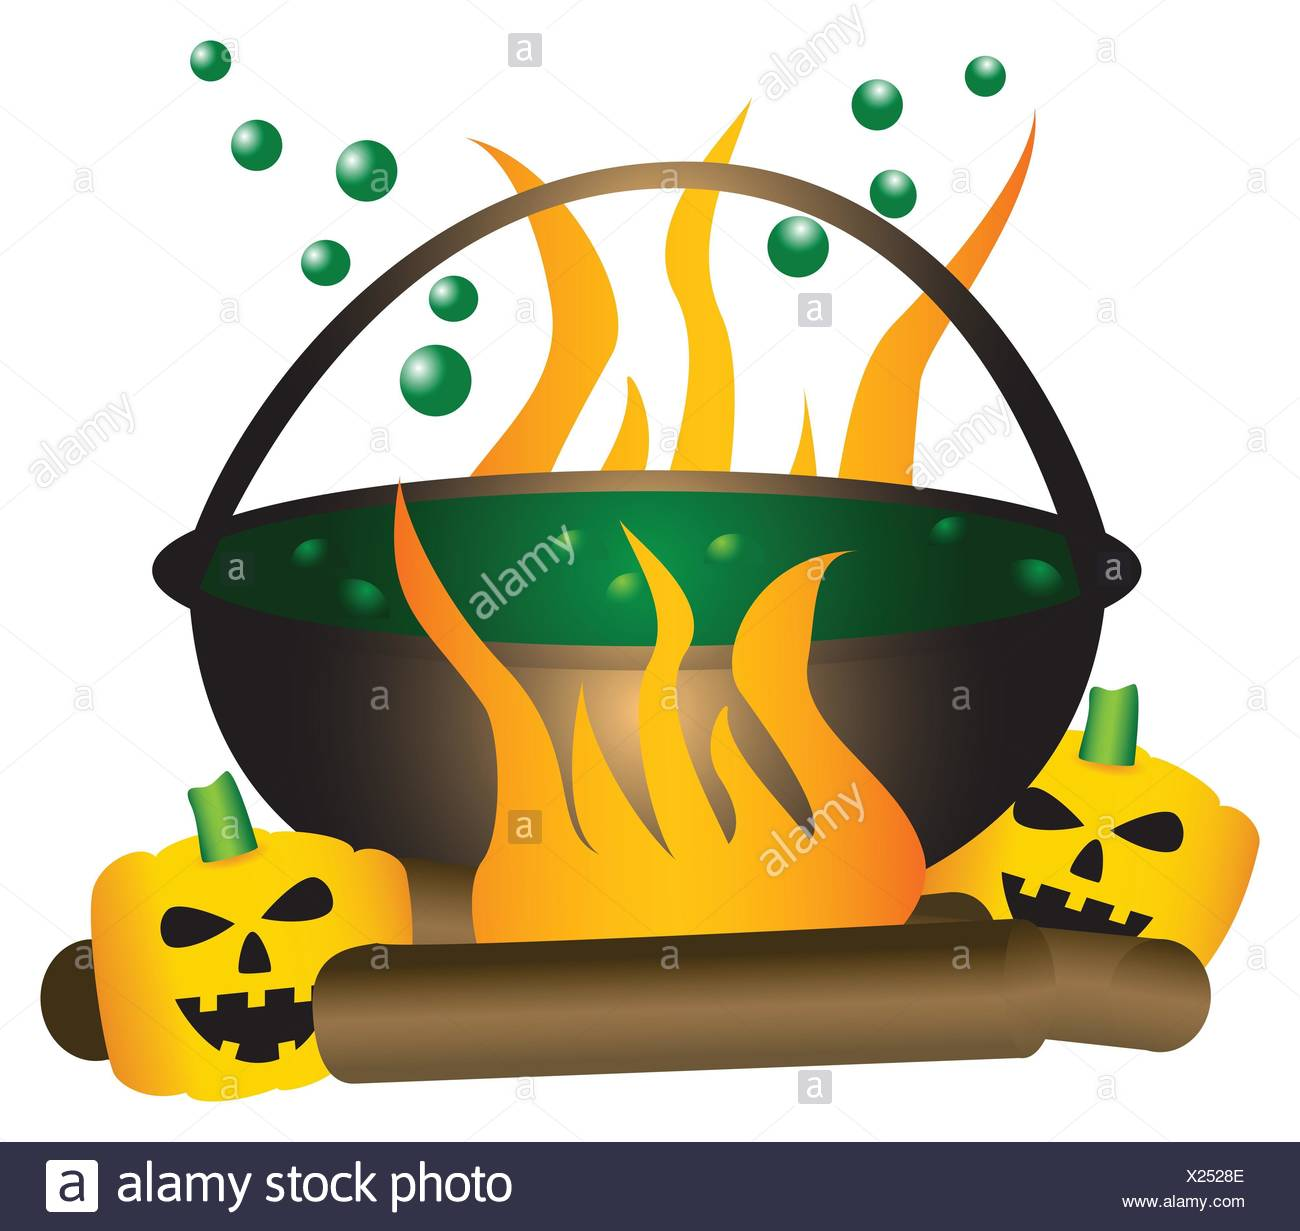 halloween theme boiling witch cauldron with green substance in it with a large fire and pumpkins underneath